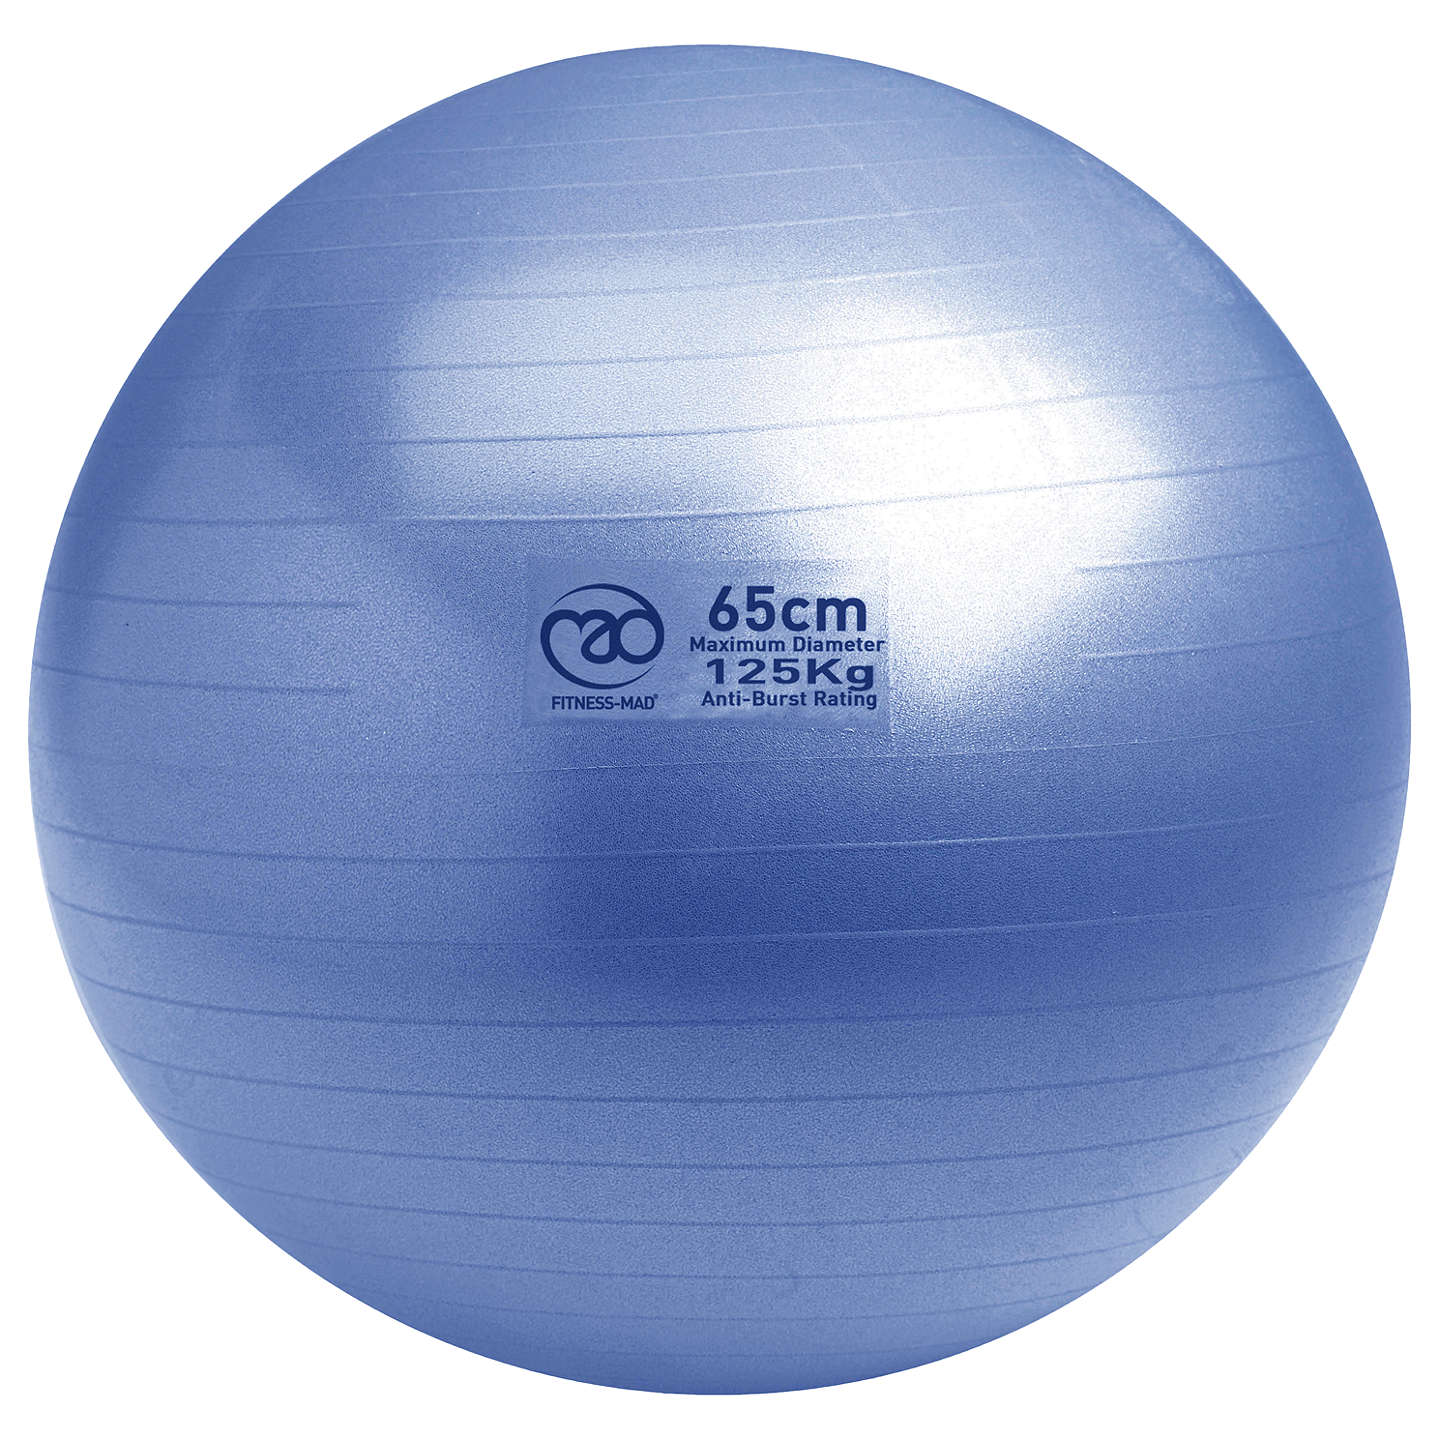 Yoga-Mad Swiss Fitness Ball and Pump, Blue at John Lewis